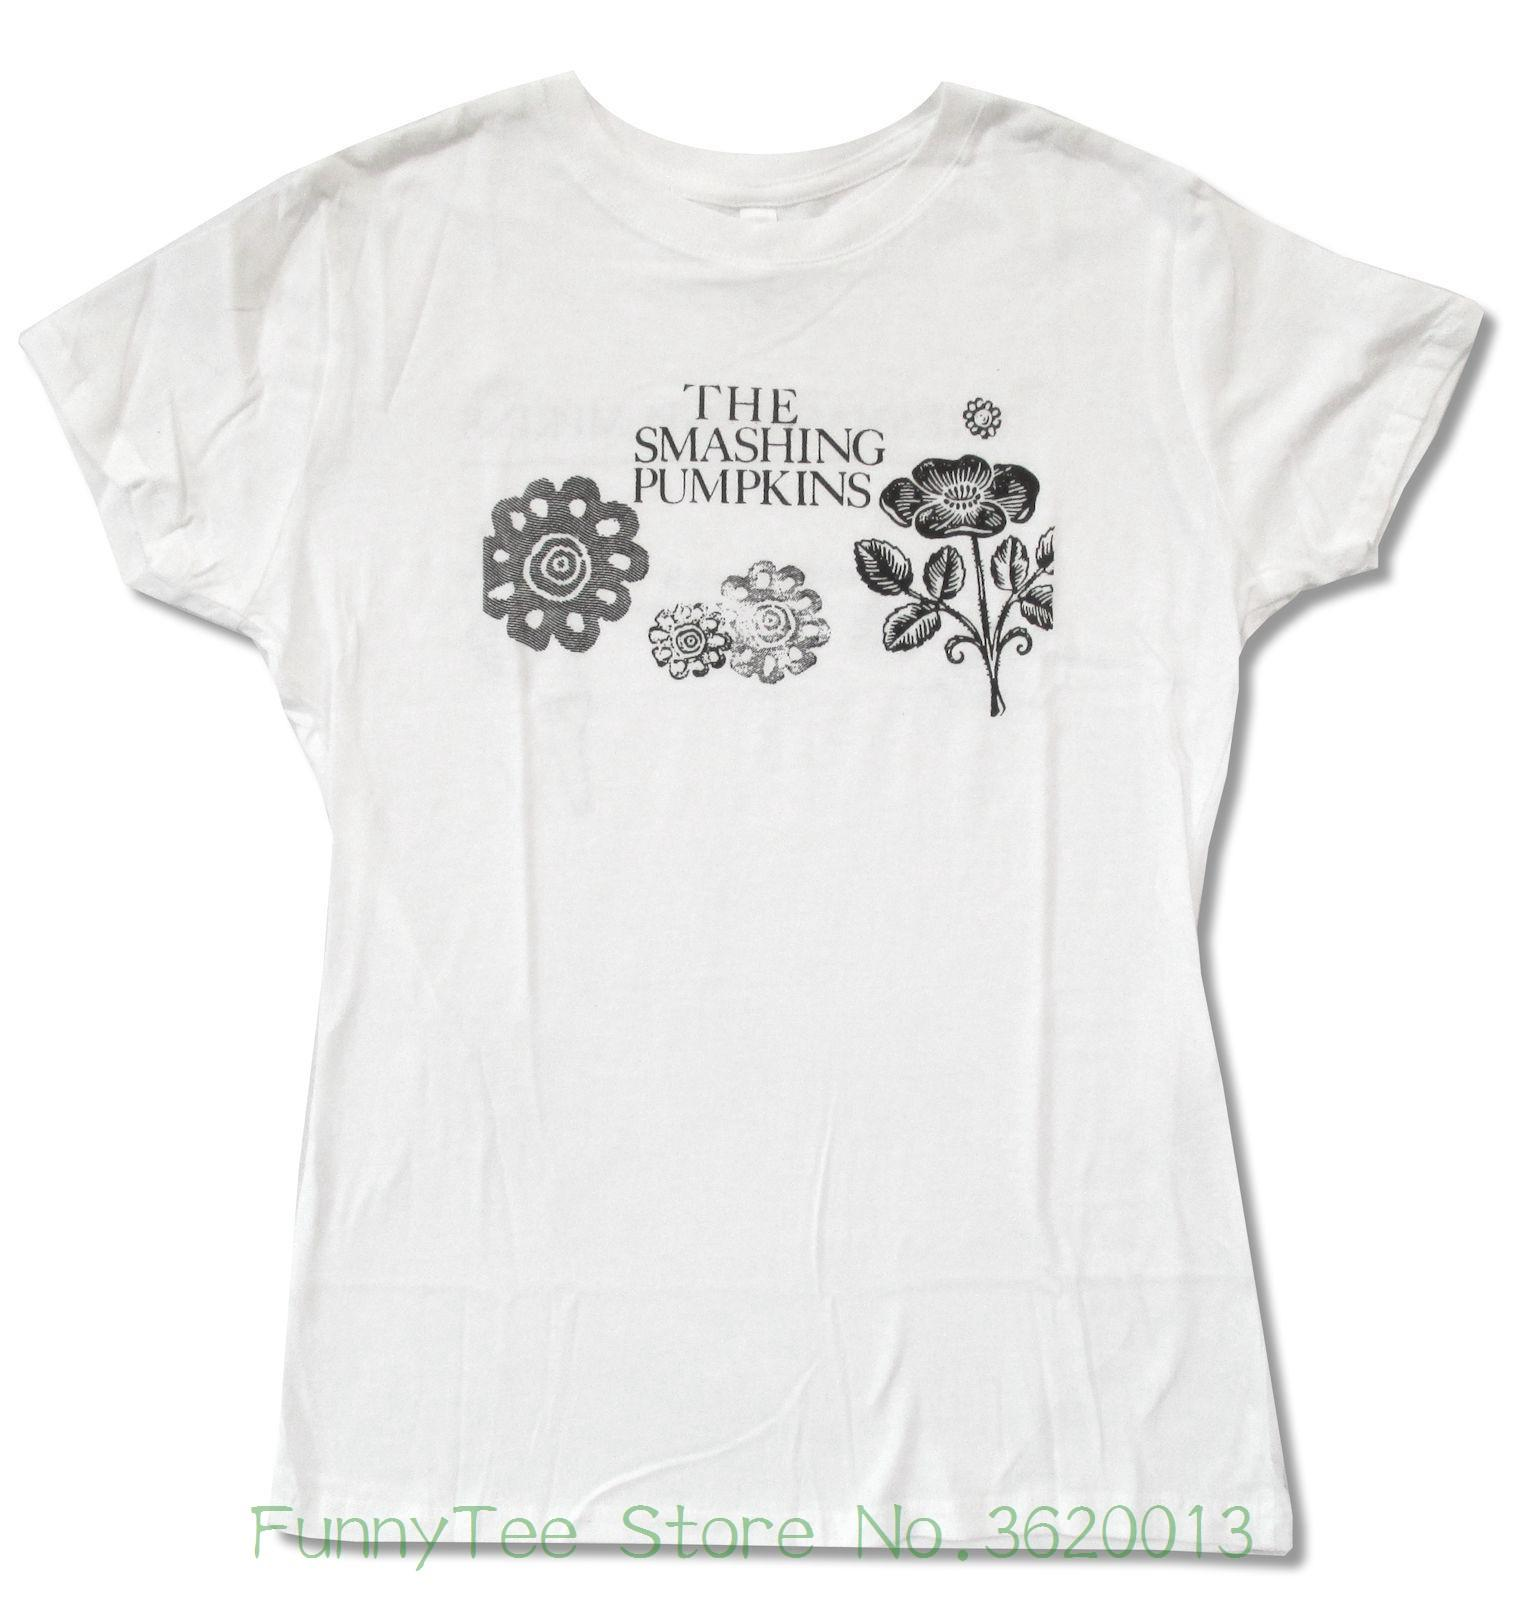 Women S Tee Smashing Pumpkins Flowers Juniors Girls White T Shirt New  Official Juniors Printing O Neck Funny Clever T Shirts Best Sites For T  Shirts From ... 4d19b6f8533